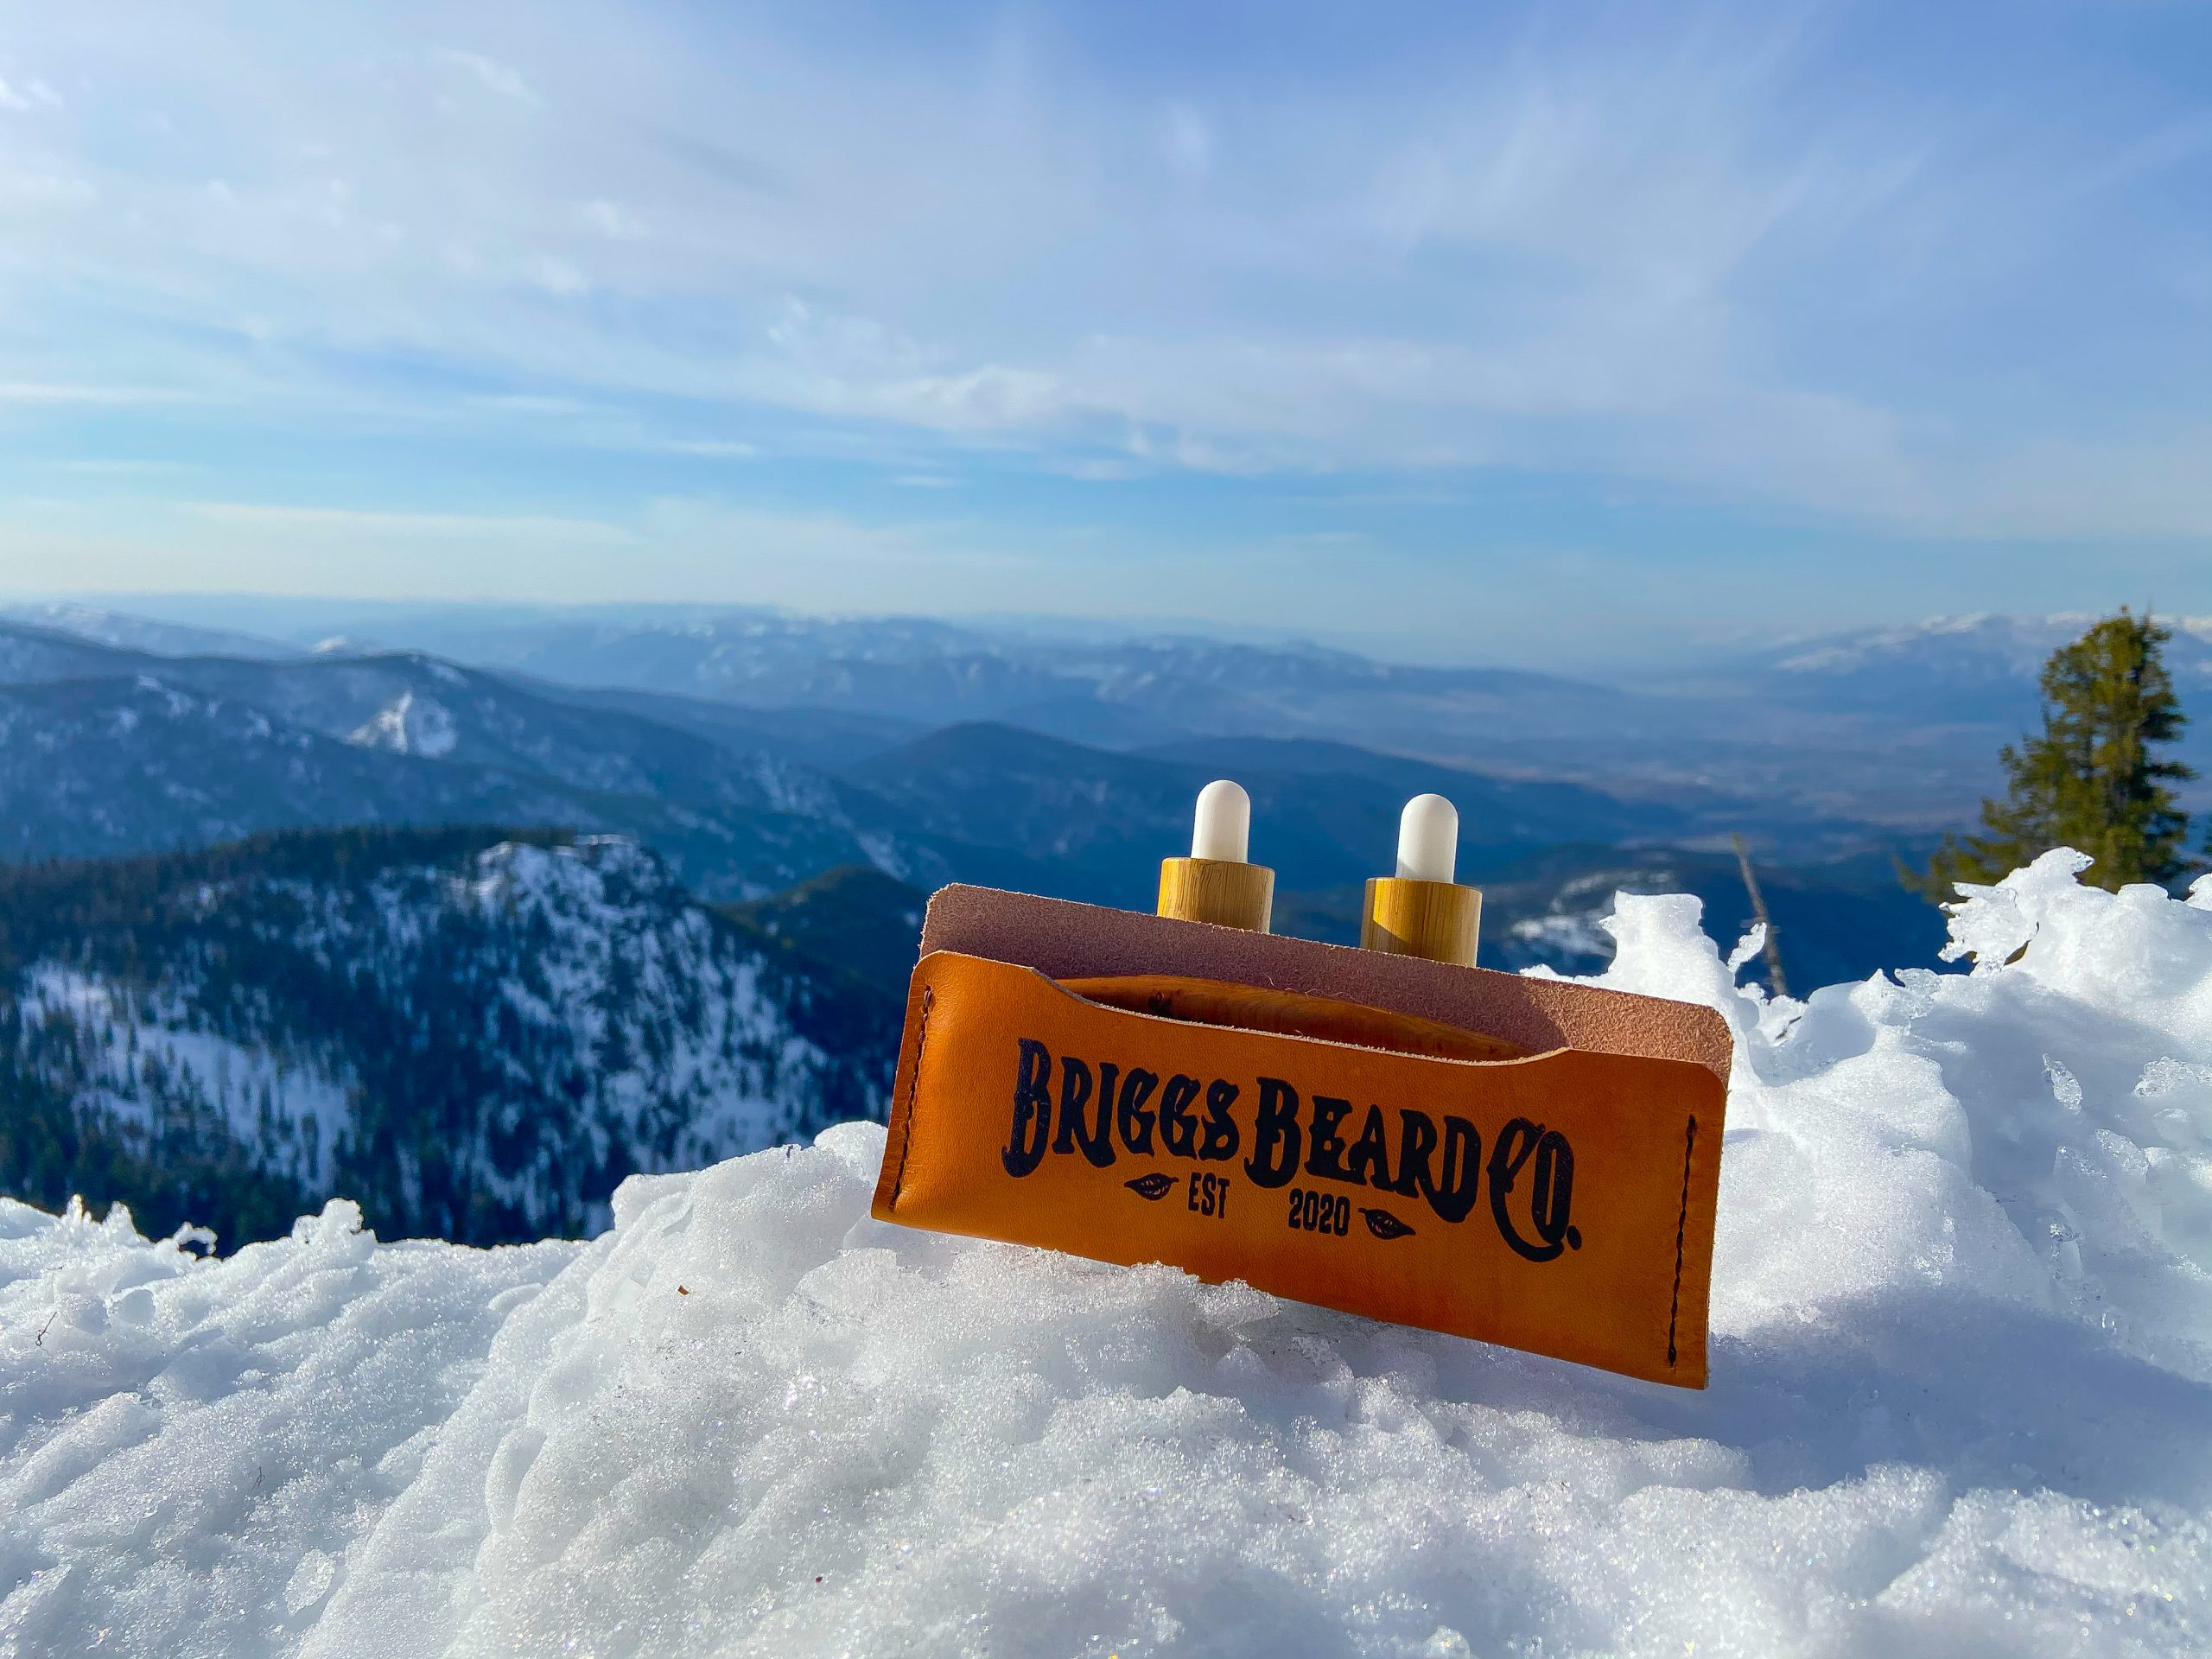 Briggs Beard Essentials Kit with a mountain view